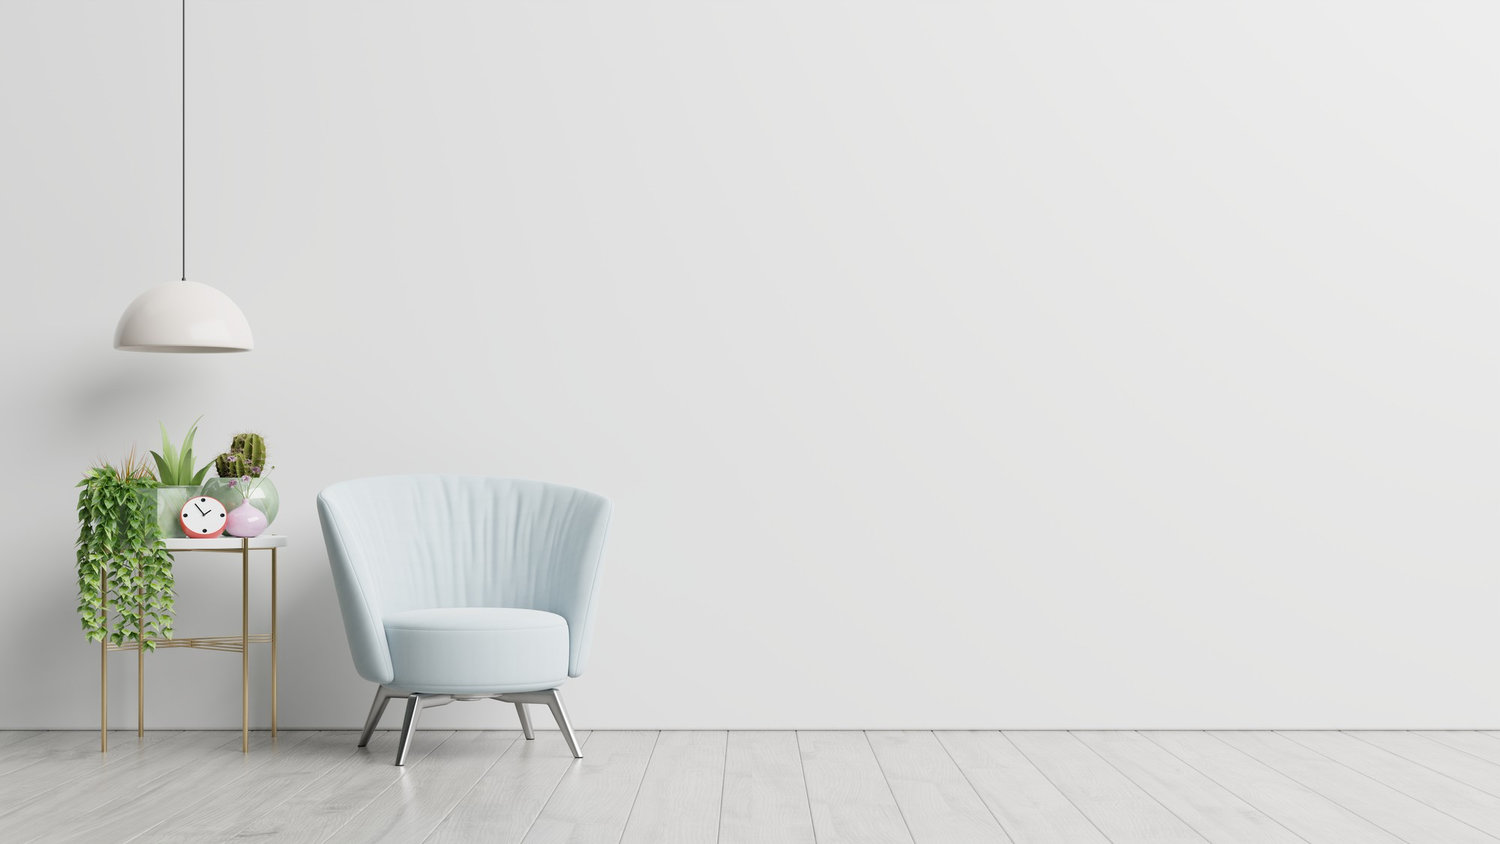 20210505 095731 interior has armchair empty white wall background 3d rendering.